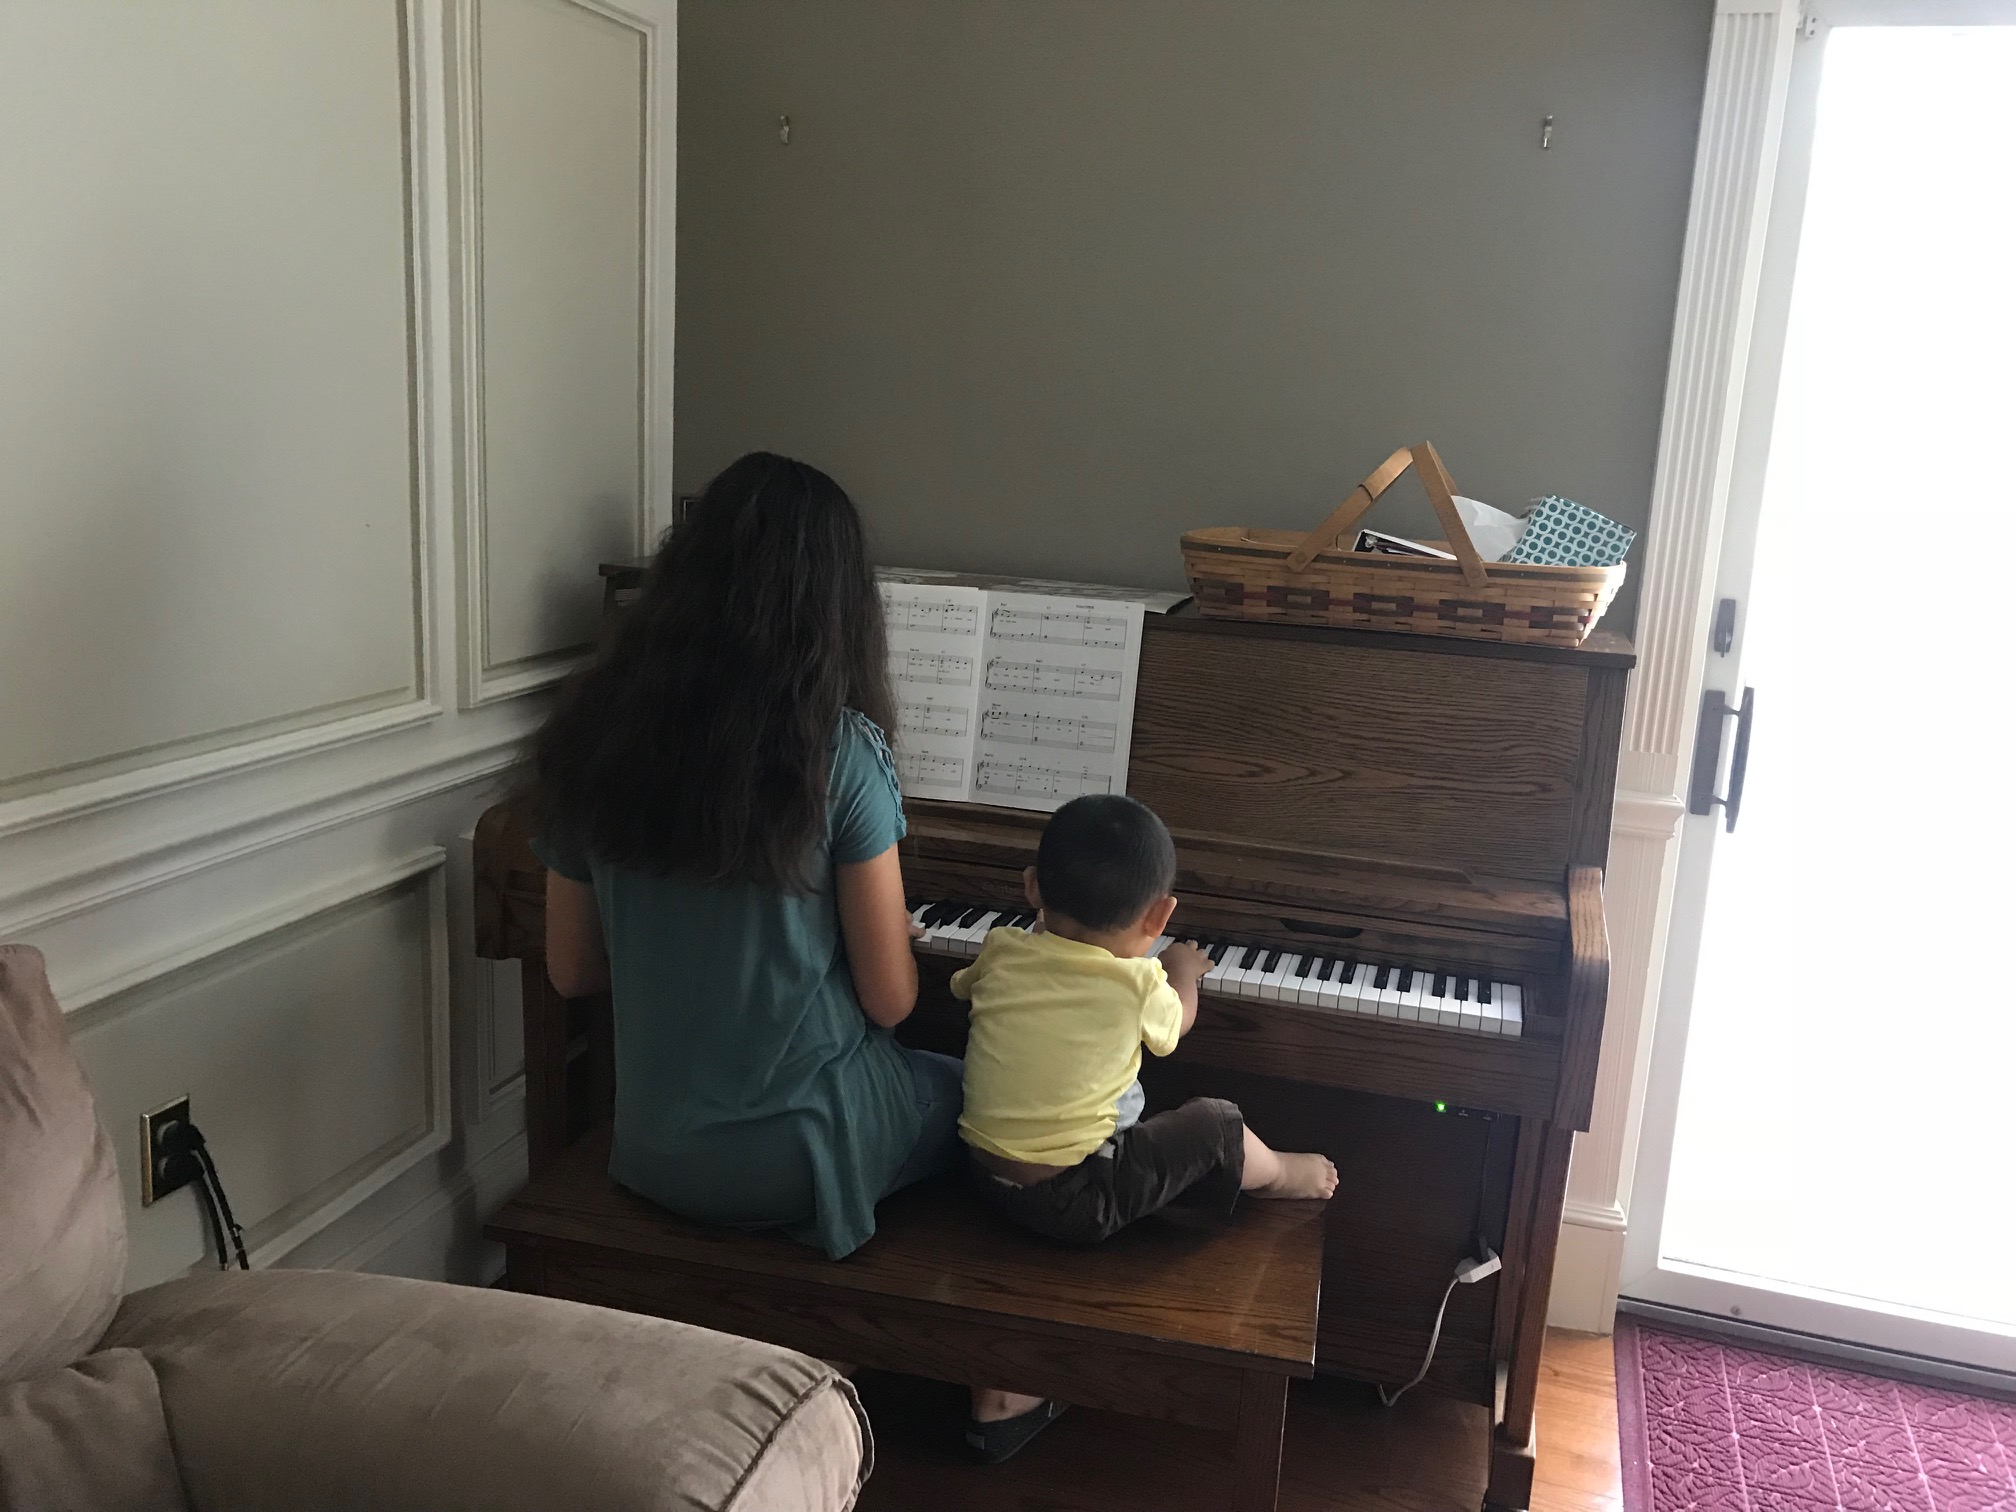 Of course Abby heads straight to the piano and where Abby goes... Luke follows.